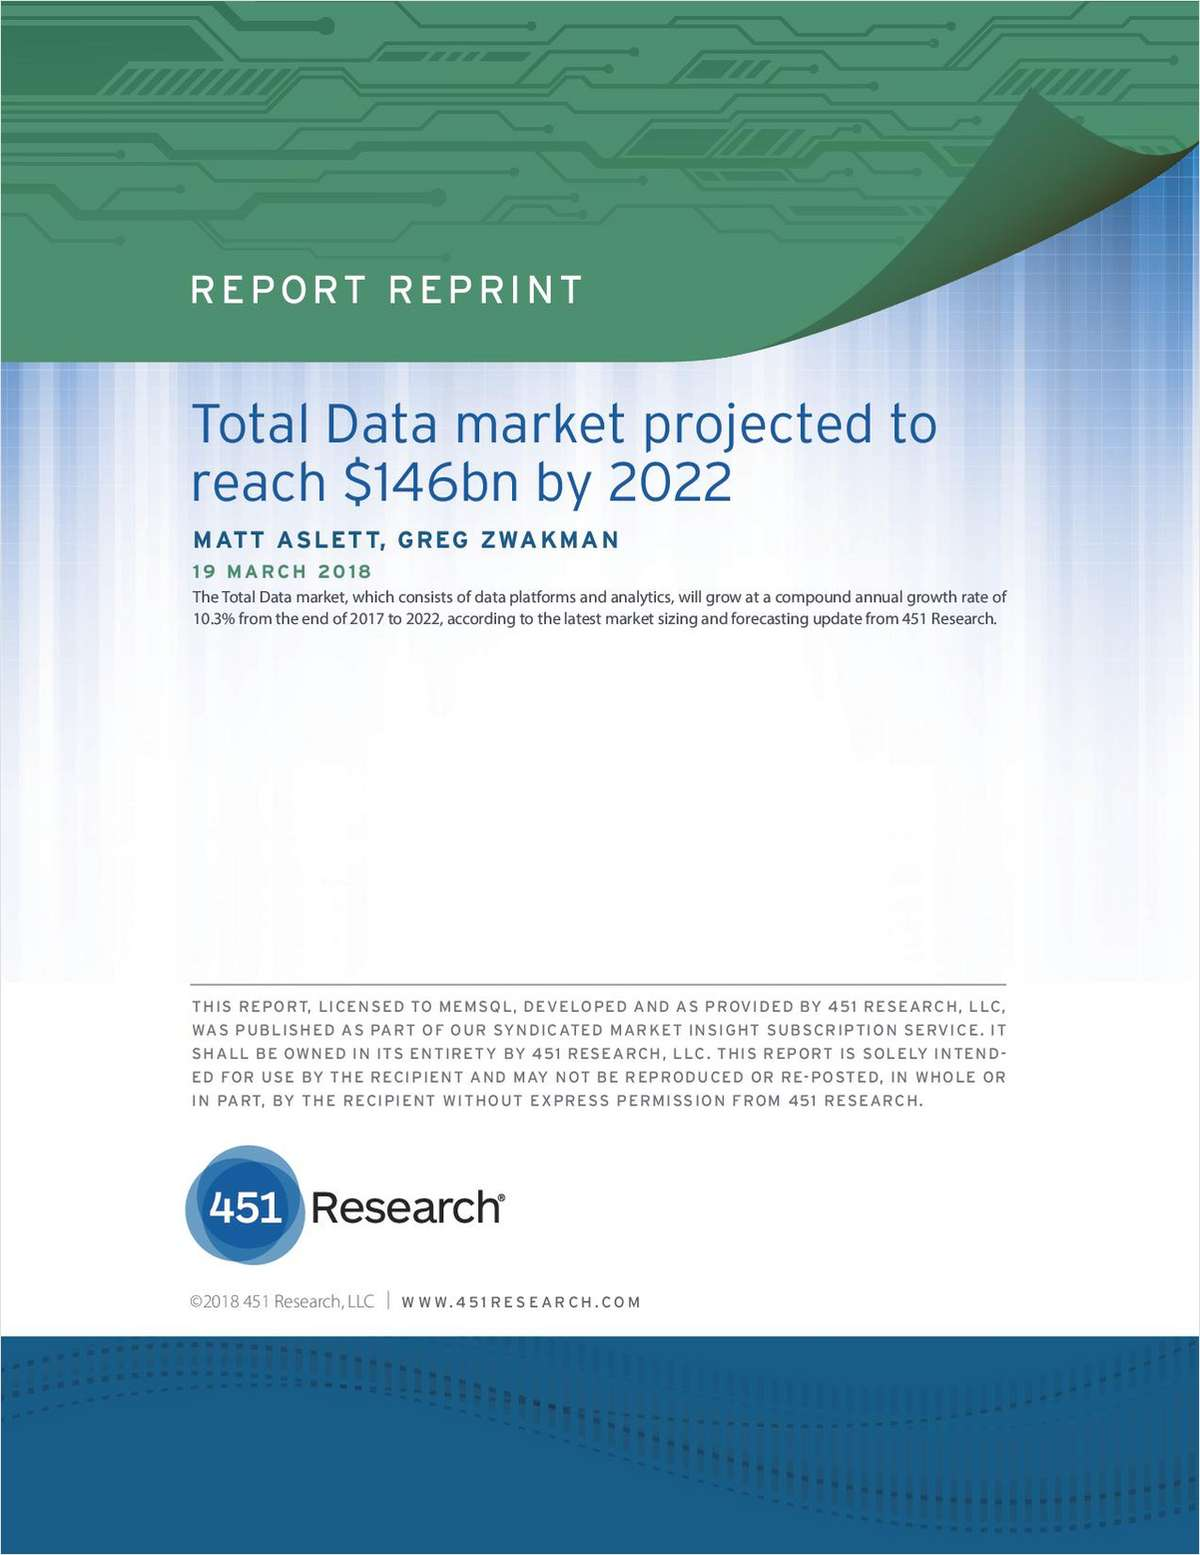 Total Data Market Projected to Reach $146bn by 2022